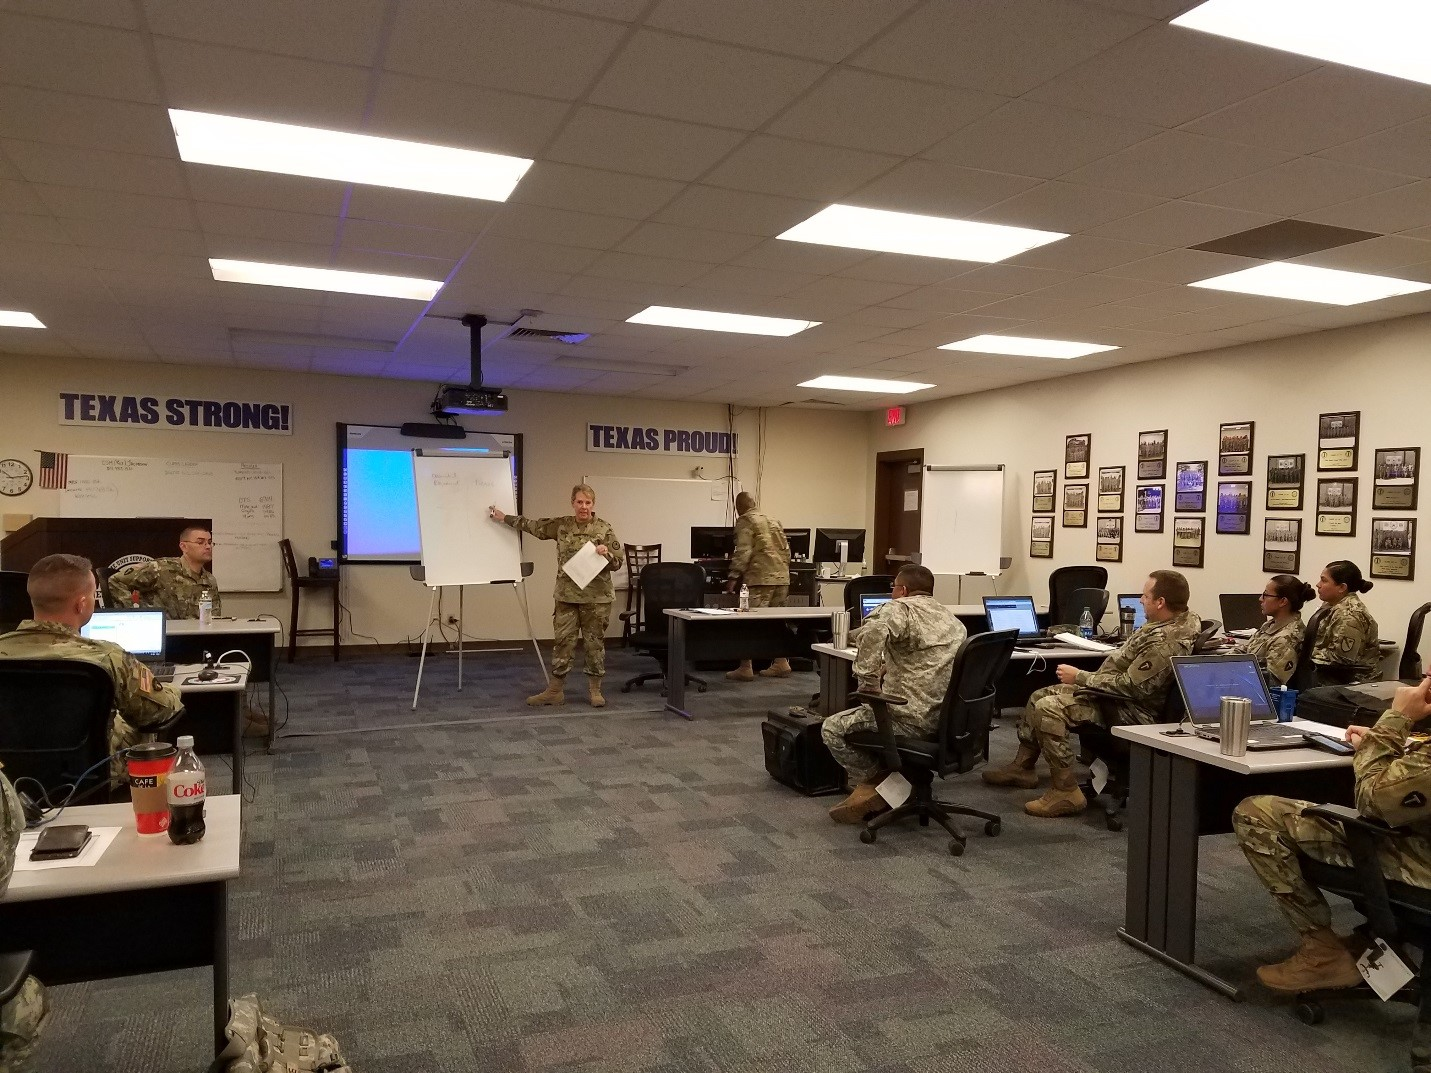 Brig. Gen. Tracy Norris conveys her vision for the way ahead for Texas Army National Guard logisticians at the Sustainment Assistance Logistics Training Course of the Texas Army Career Training Program, at Camp Bowie in Brownwood, Texas, March 28, 2017. (U.S. Army National Guard photo by 1st Lt. Jolene Hinojosa)